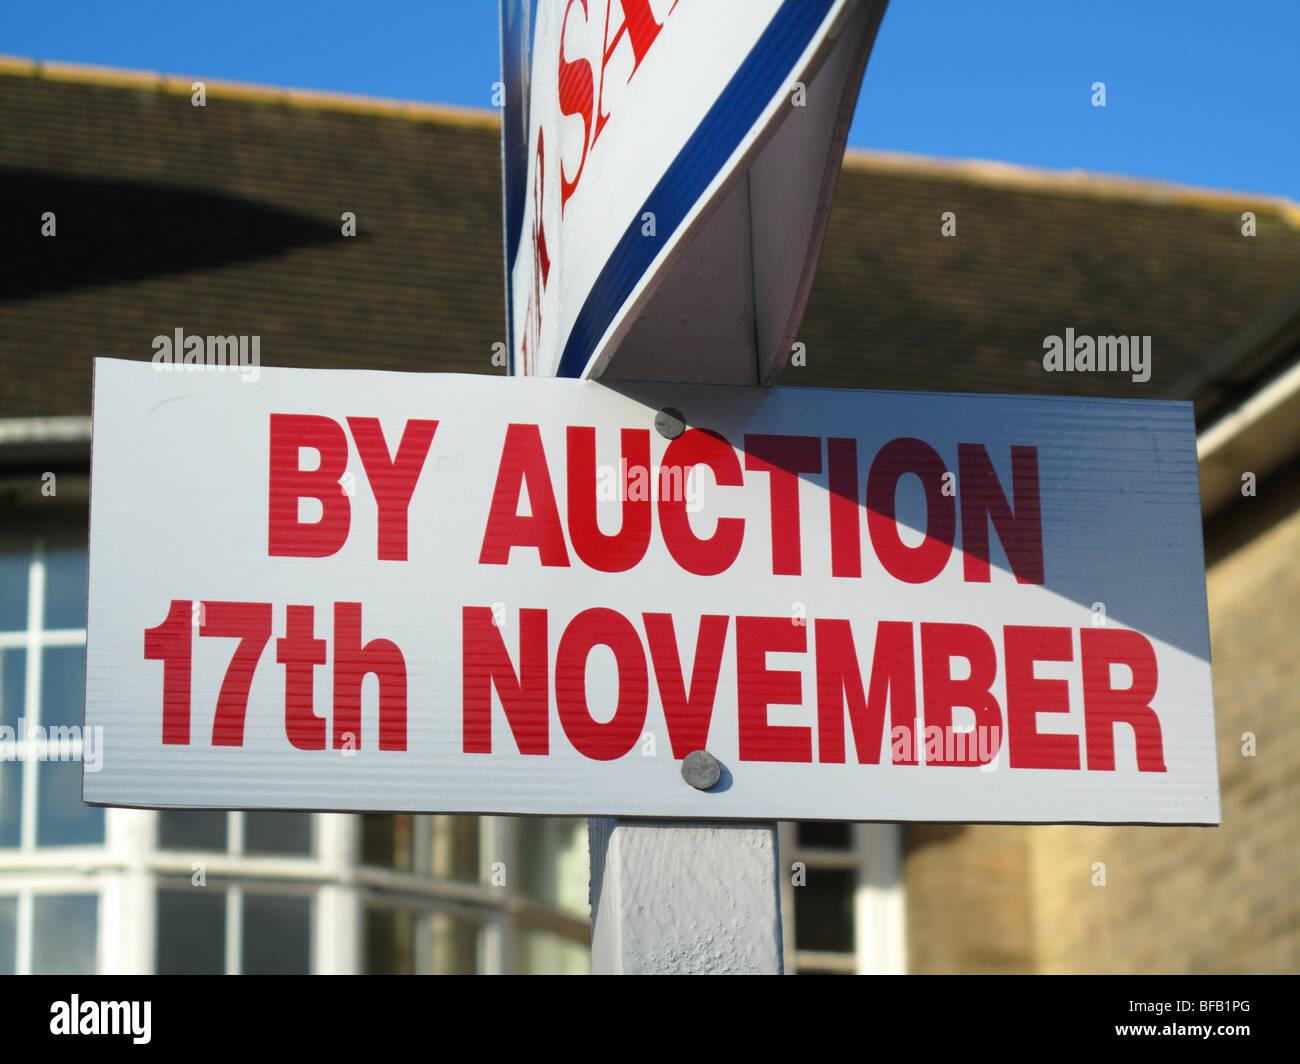 A property for sale by auction in the U.K. - Stock Image